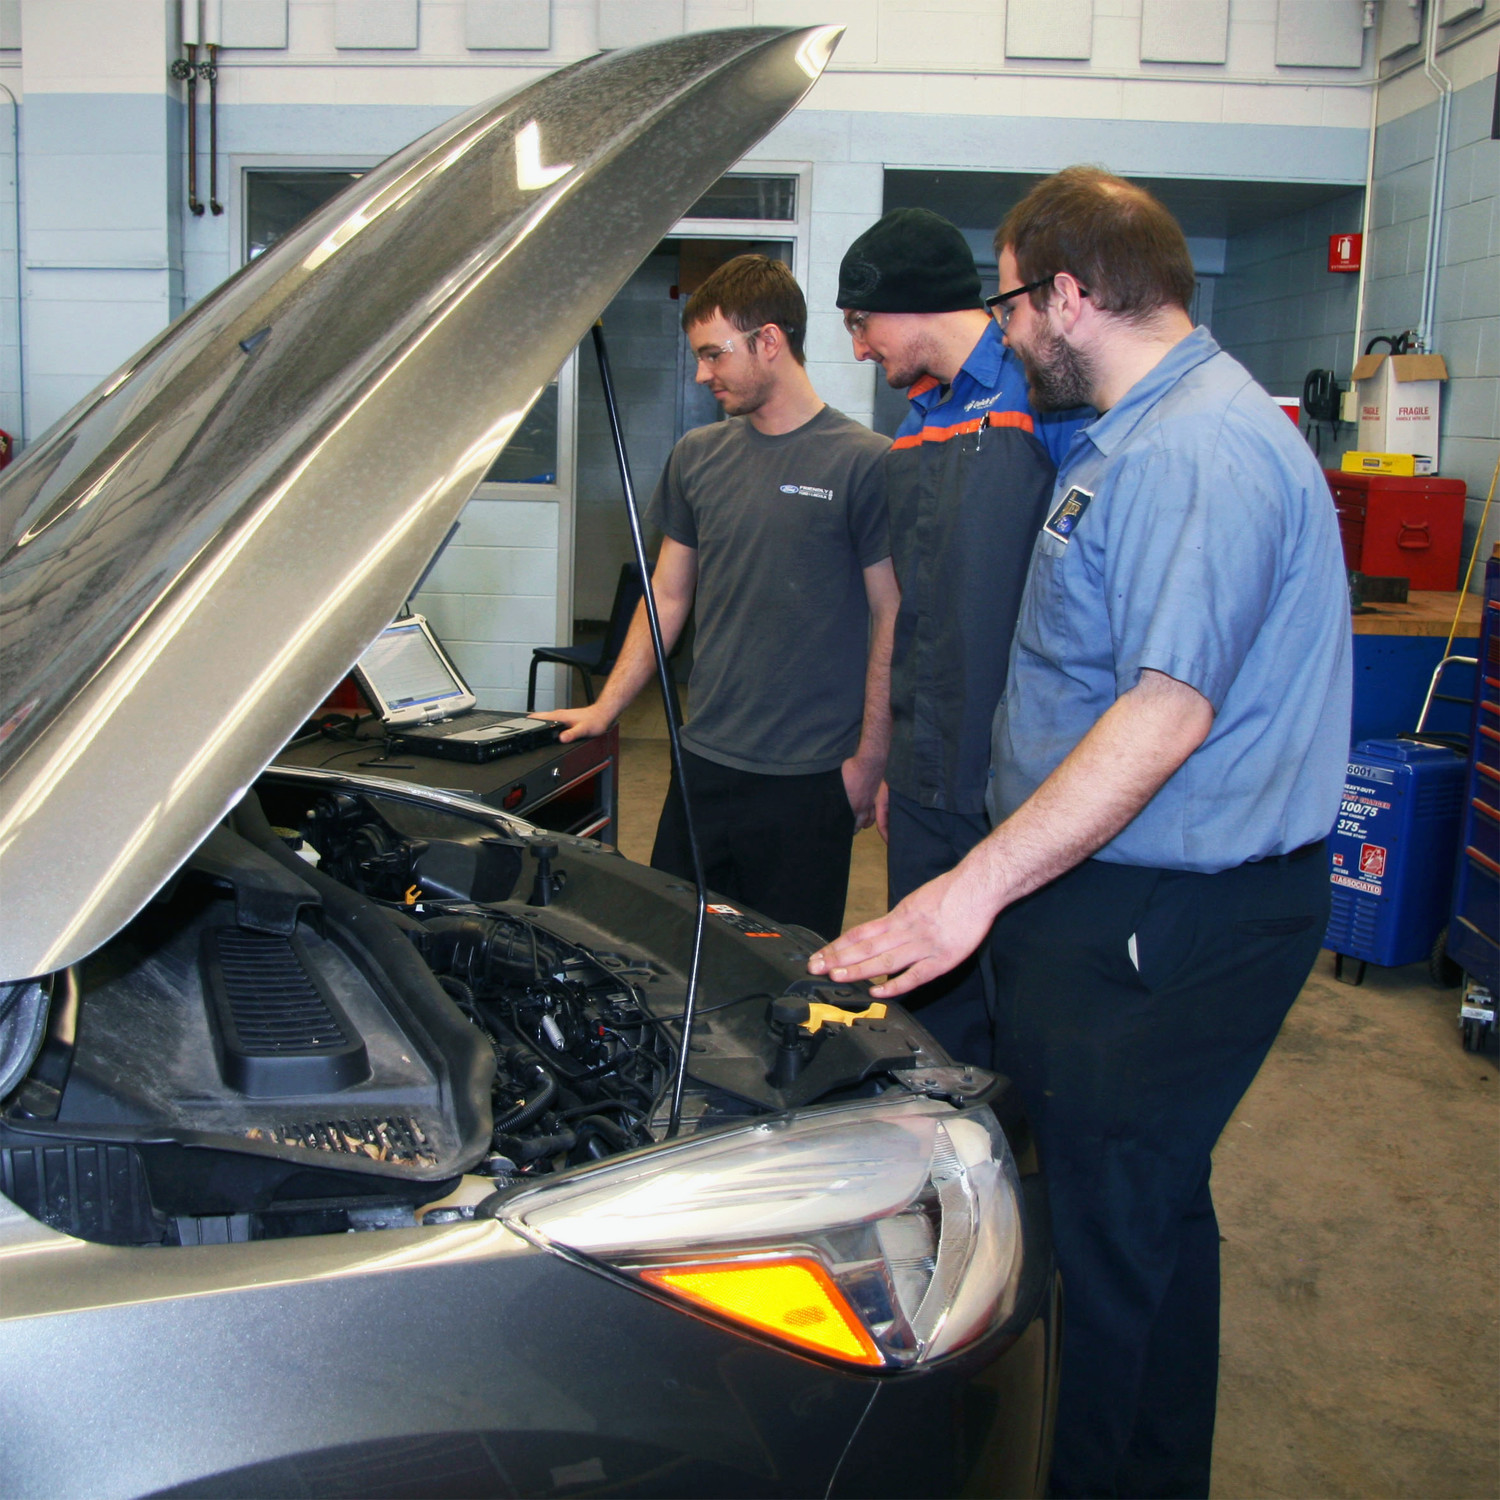 one of the largest programs in the Ford System with 24 full-time students